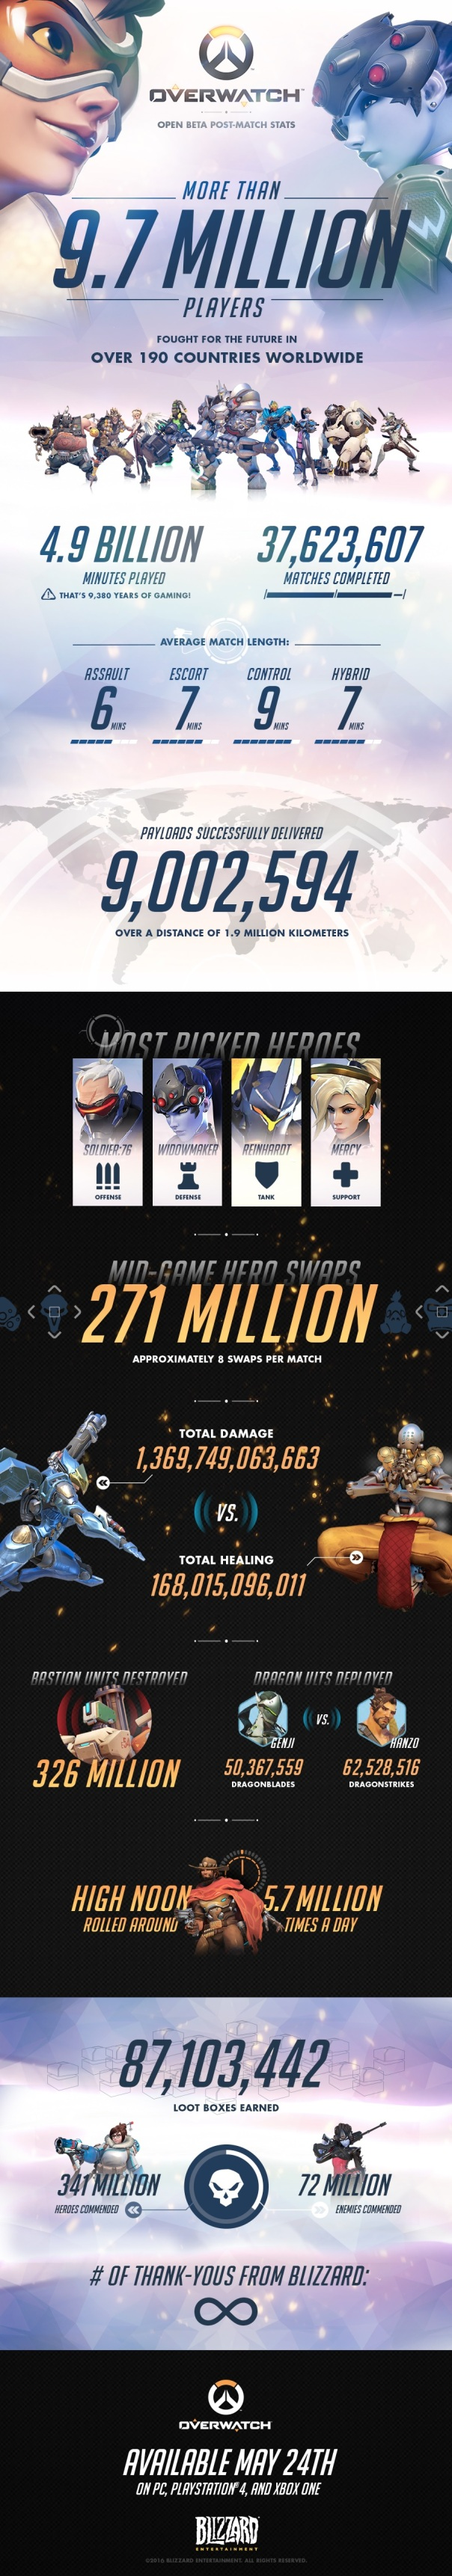 overwatch-open-beta-infographic